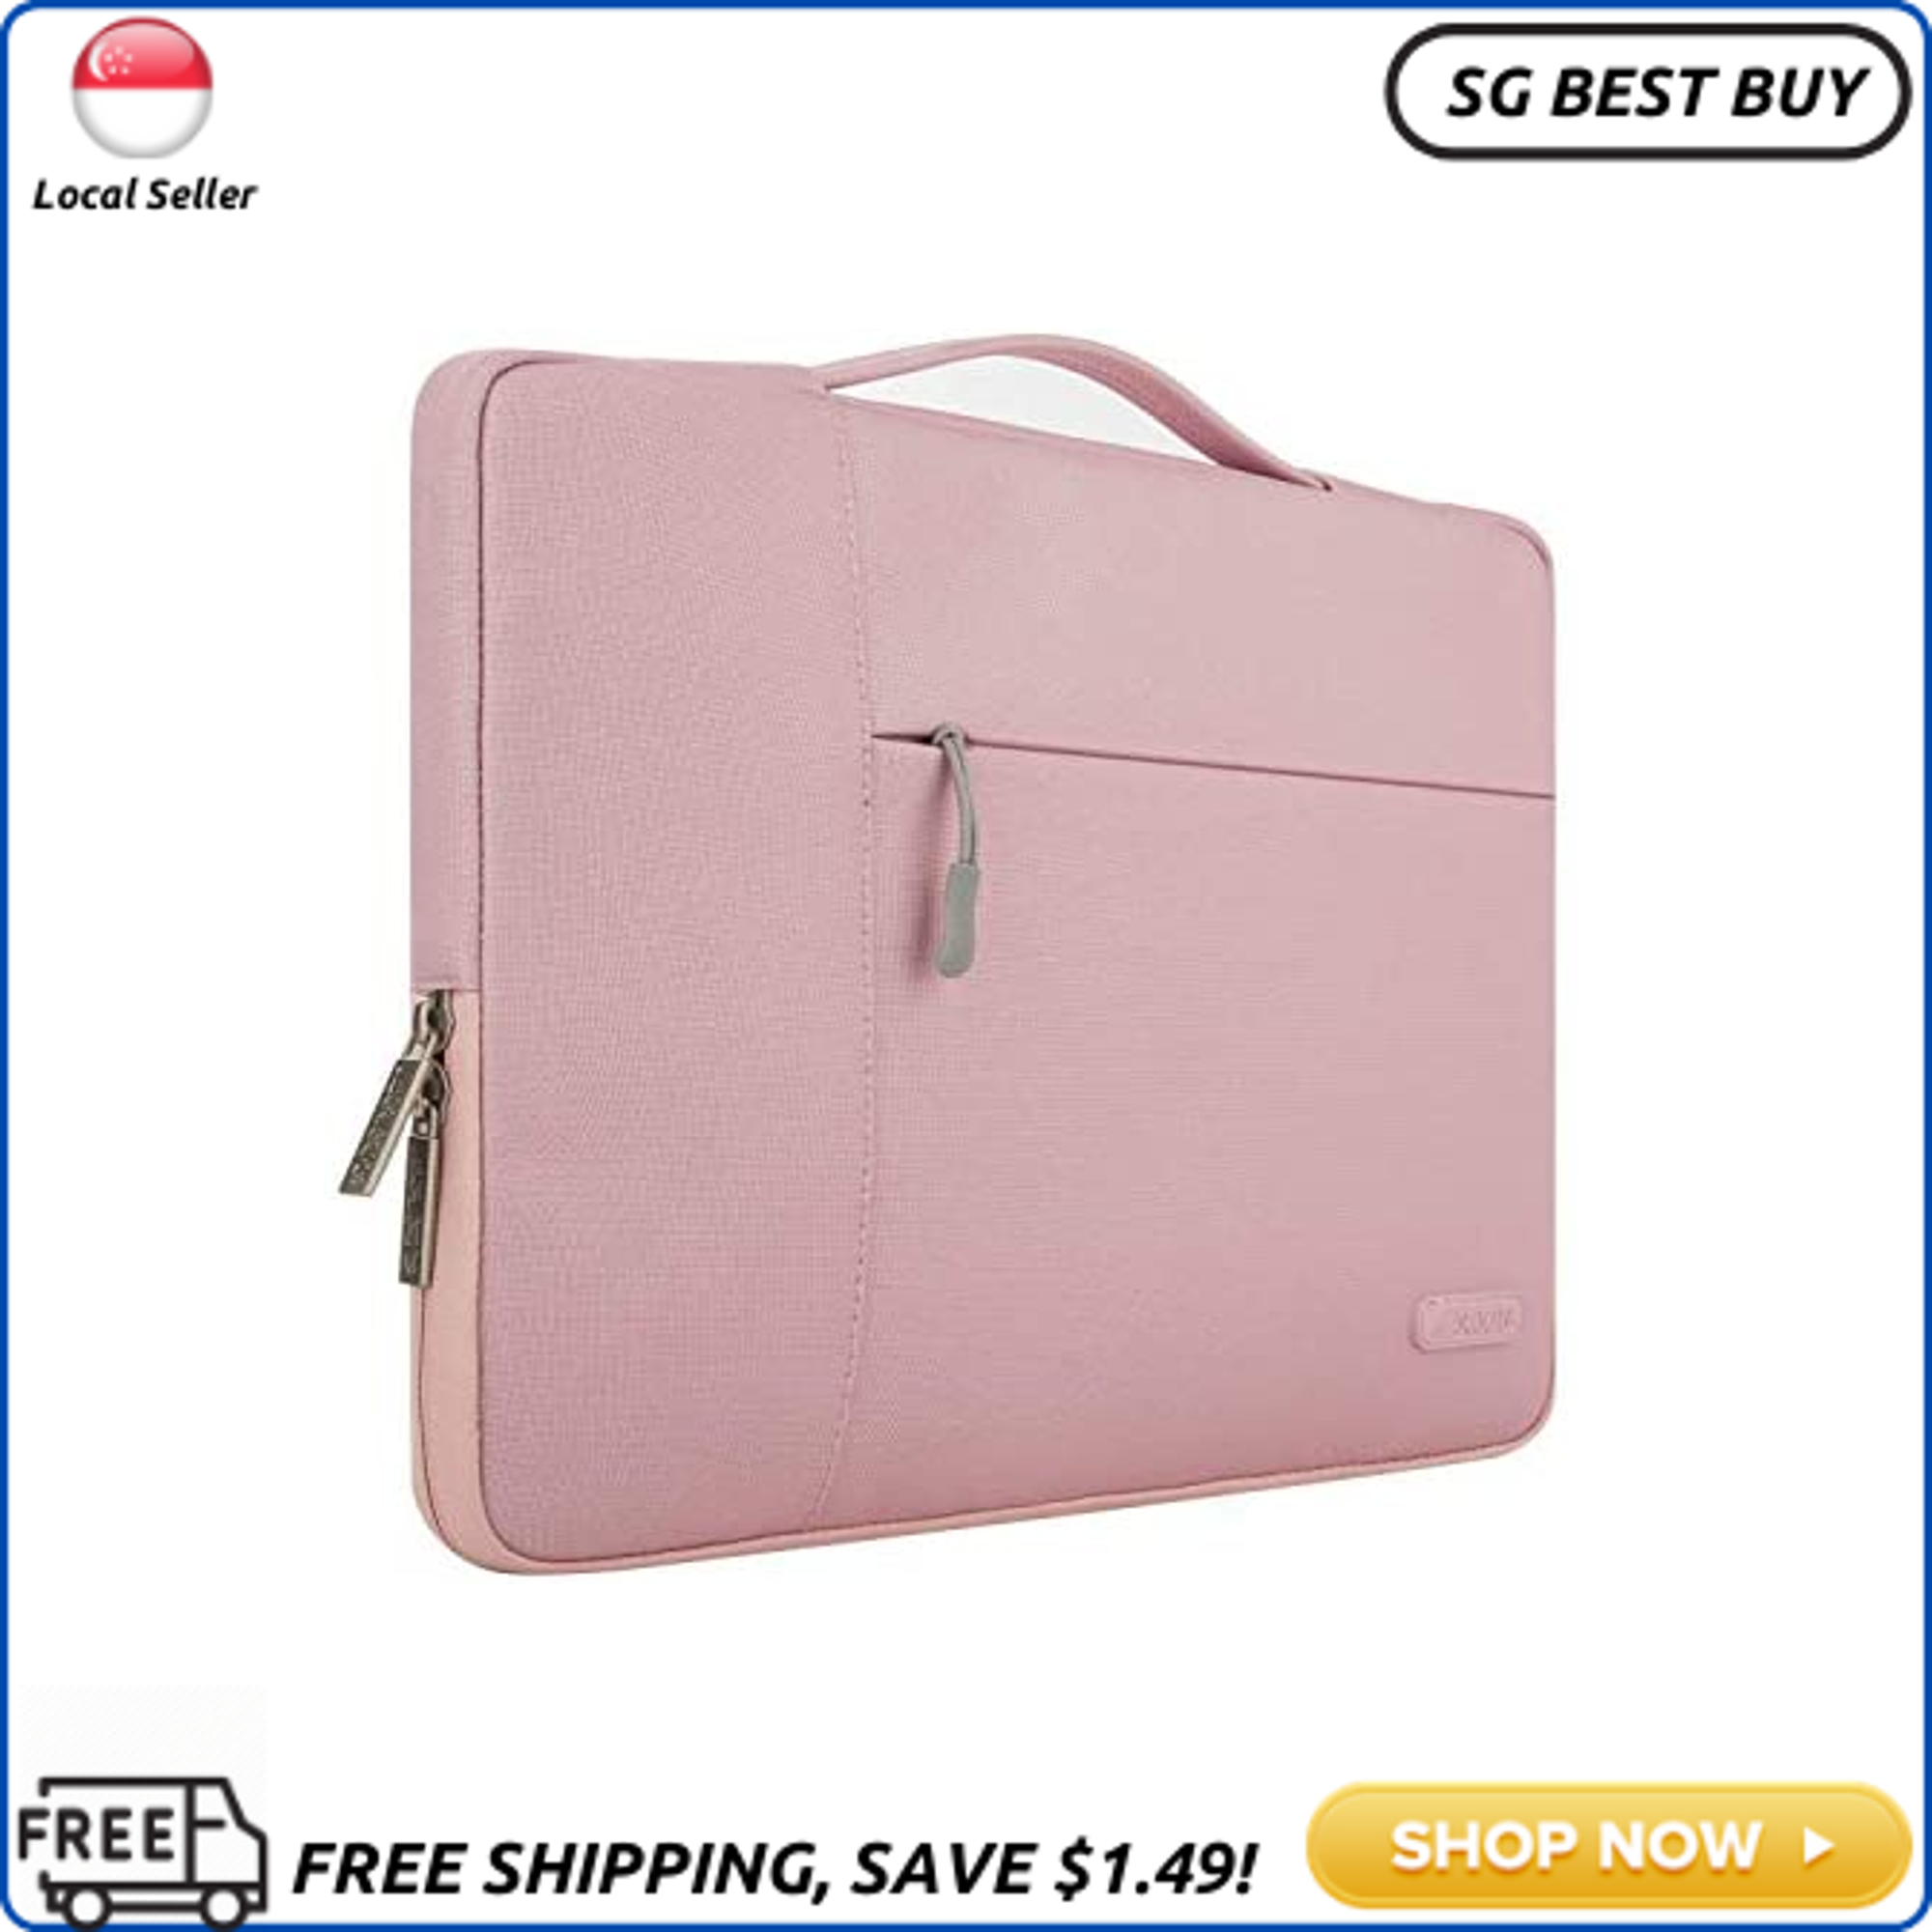 (SG SELLER) MOSISO Laptop Sleeve Compatible with 2019 2018 MacBook Air 13 inch A1932,13 inch MacBook Pro A2159 A1989 A1706 A1708,Polyester Multifunctional Briefcase Handbag Carrying Case Cover Bag, Pink